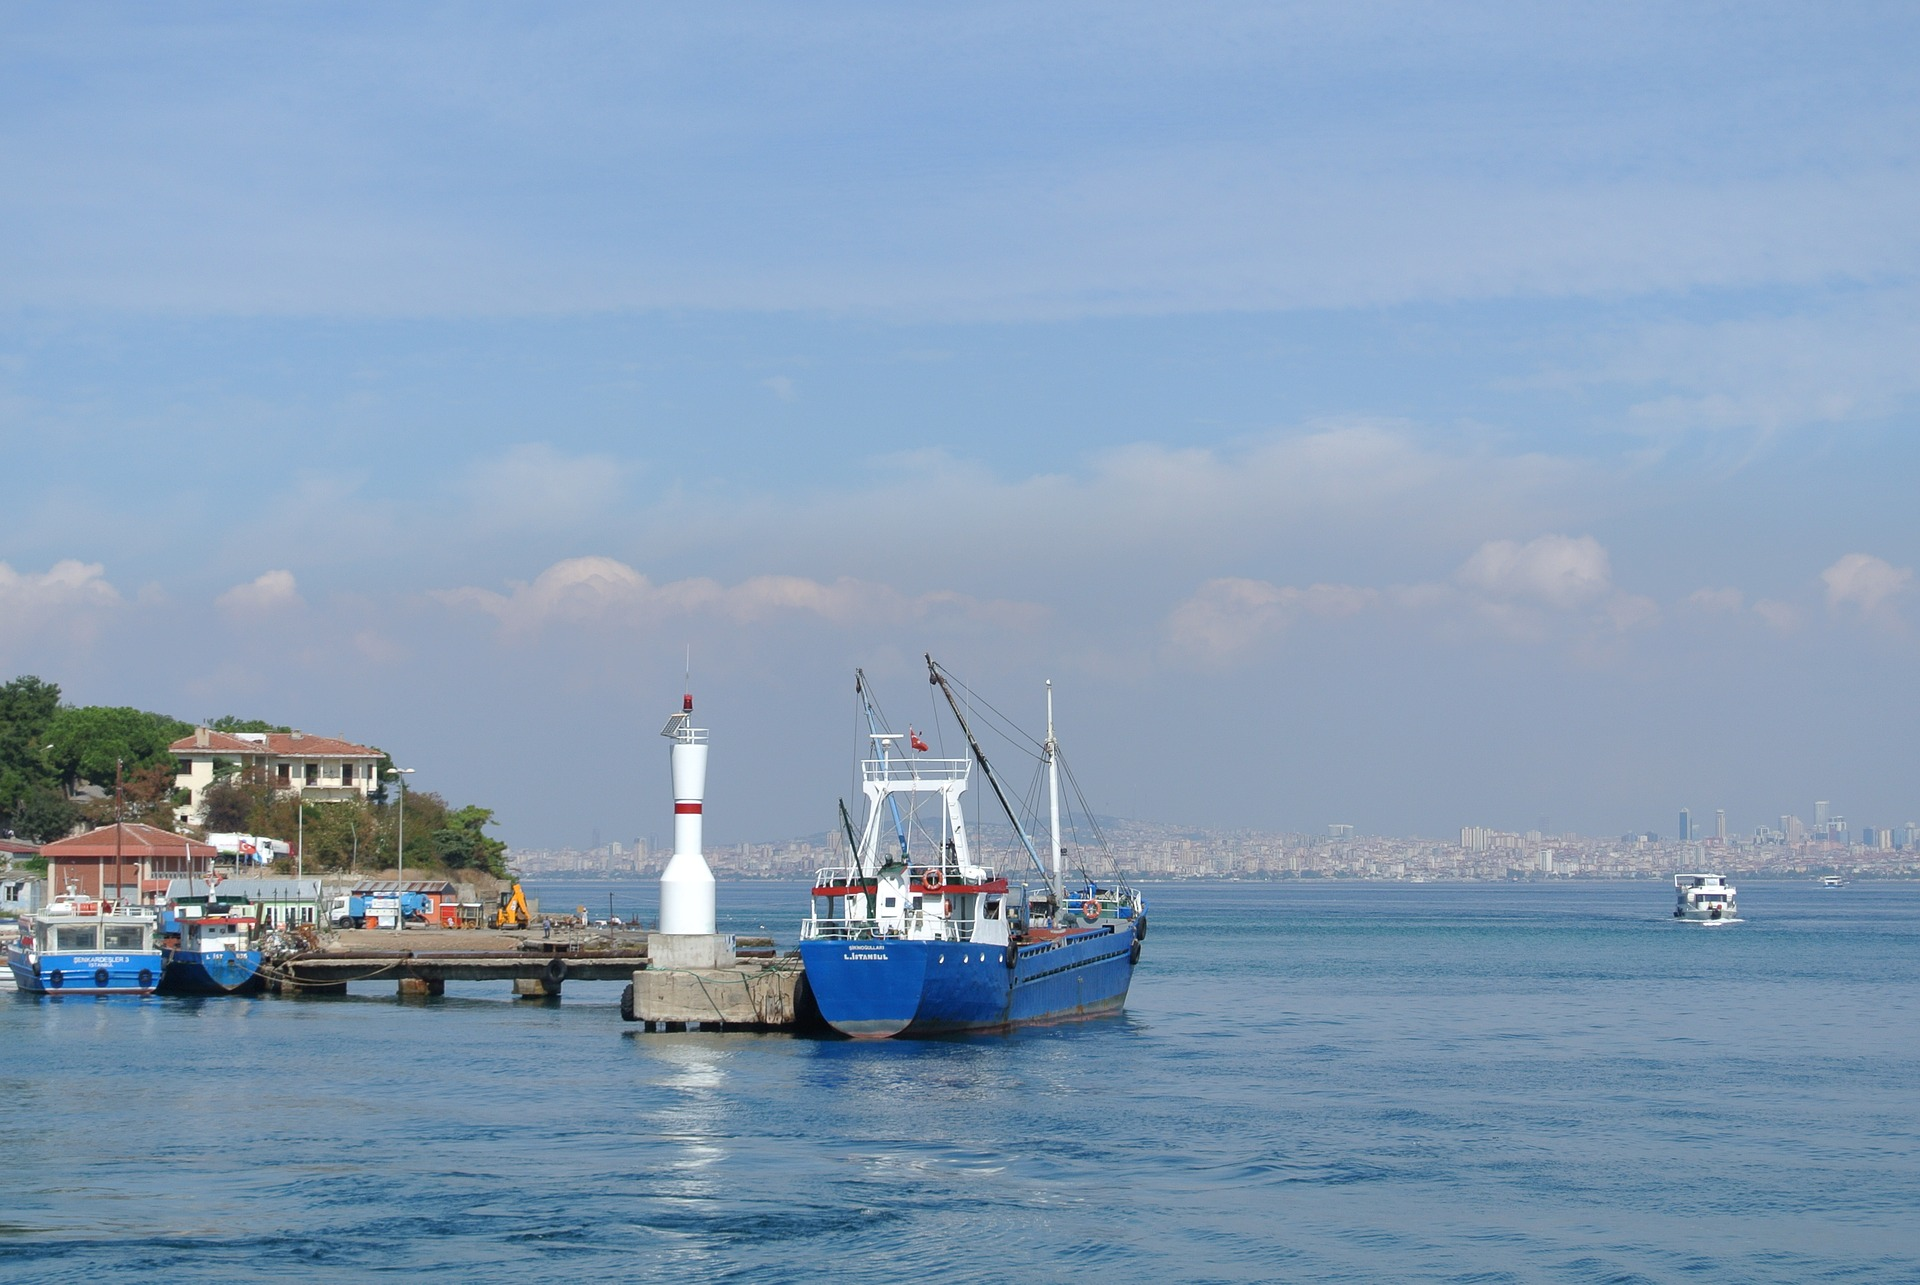 Places to visit in Marmara Island - Historical and natural beauties, beaches, bays and villages